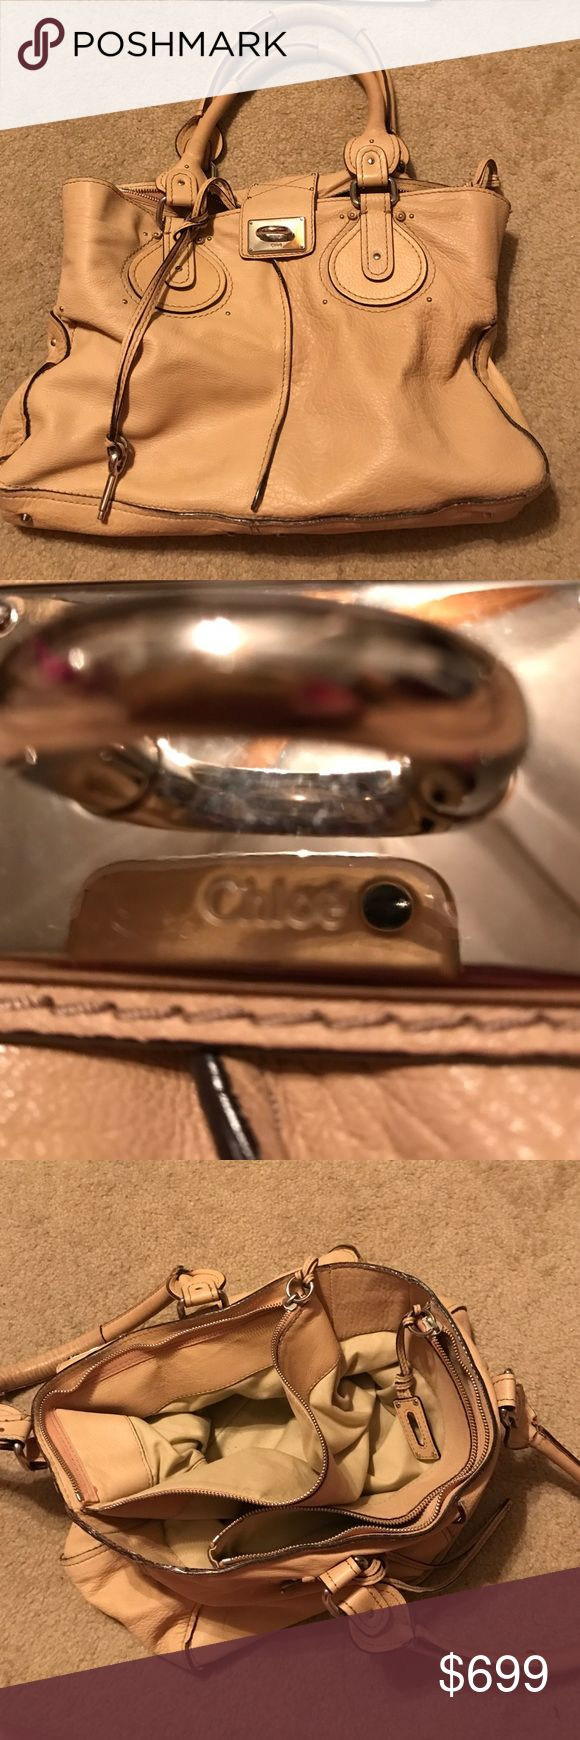 Chloe large purse authentic with card serial # Chloe large purse authentic with card serial # and hologram sticker on the other side its hard to read the number. Serious buyers feel free to request additional pics and i will post Chloe Bags Shoulder Bags